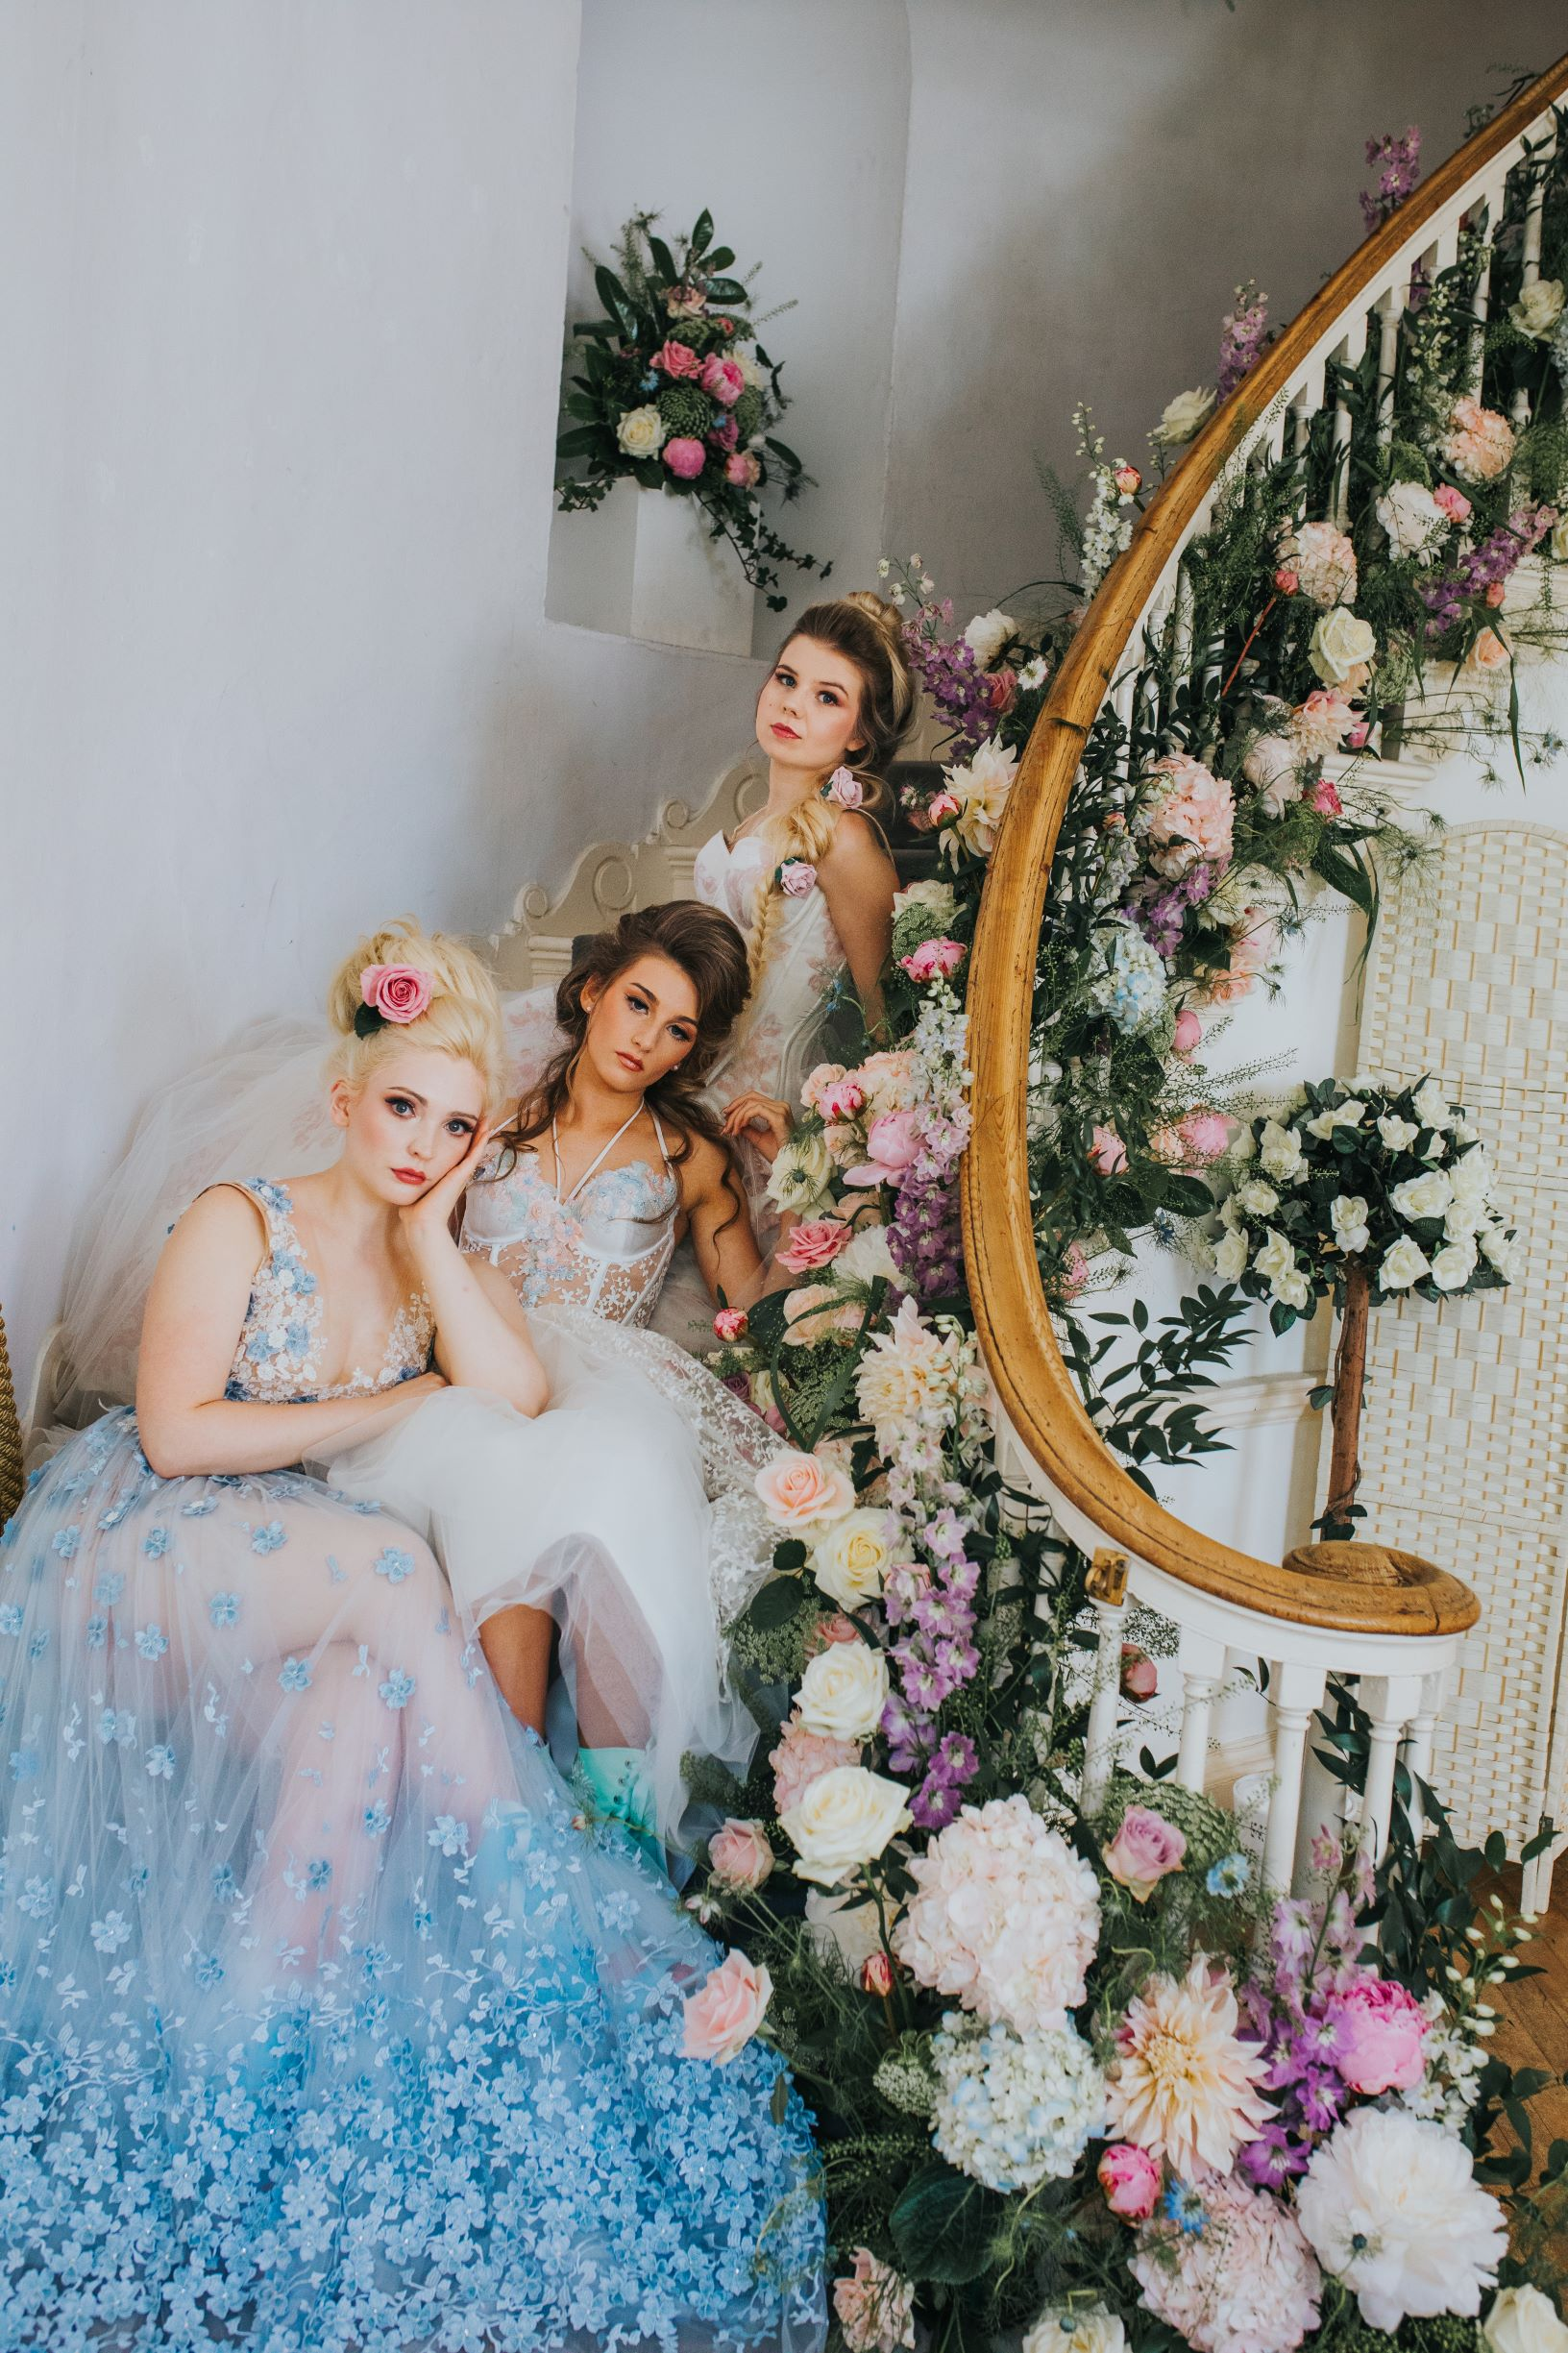 Whimsical wedding- Laura Beresford Photography- unconventional wedding- alternative wedding- brides on staircase- unique wedding flowers- alternative bridal wear